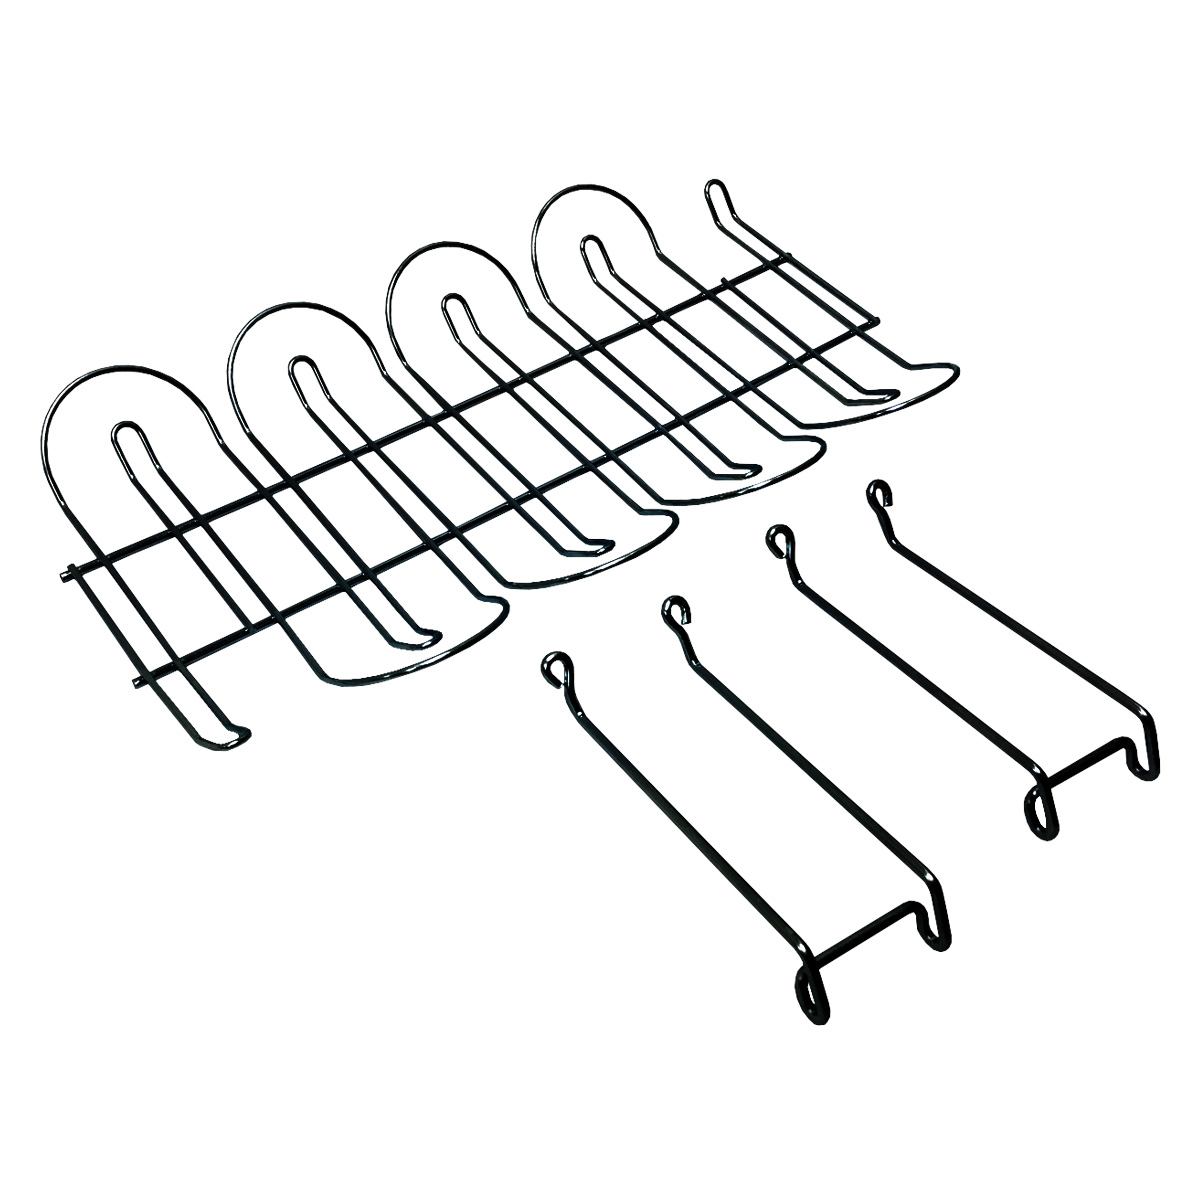 under desk steel cable mesh tray for wire management